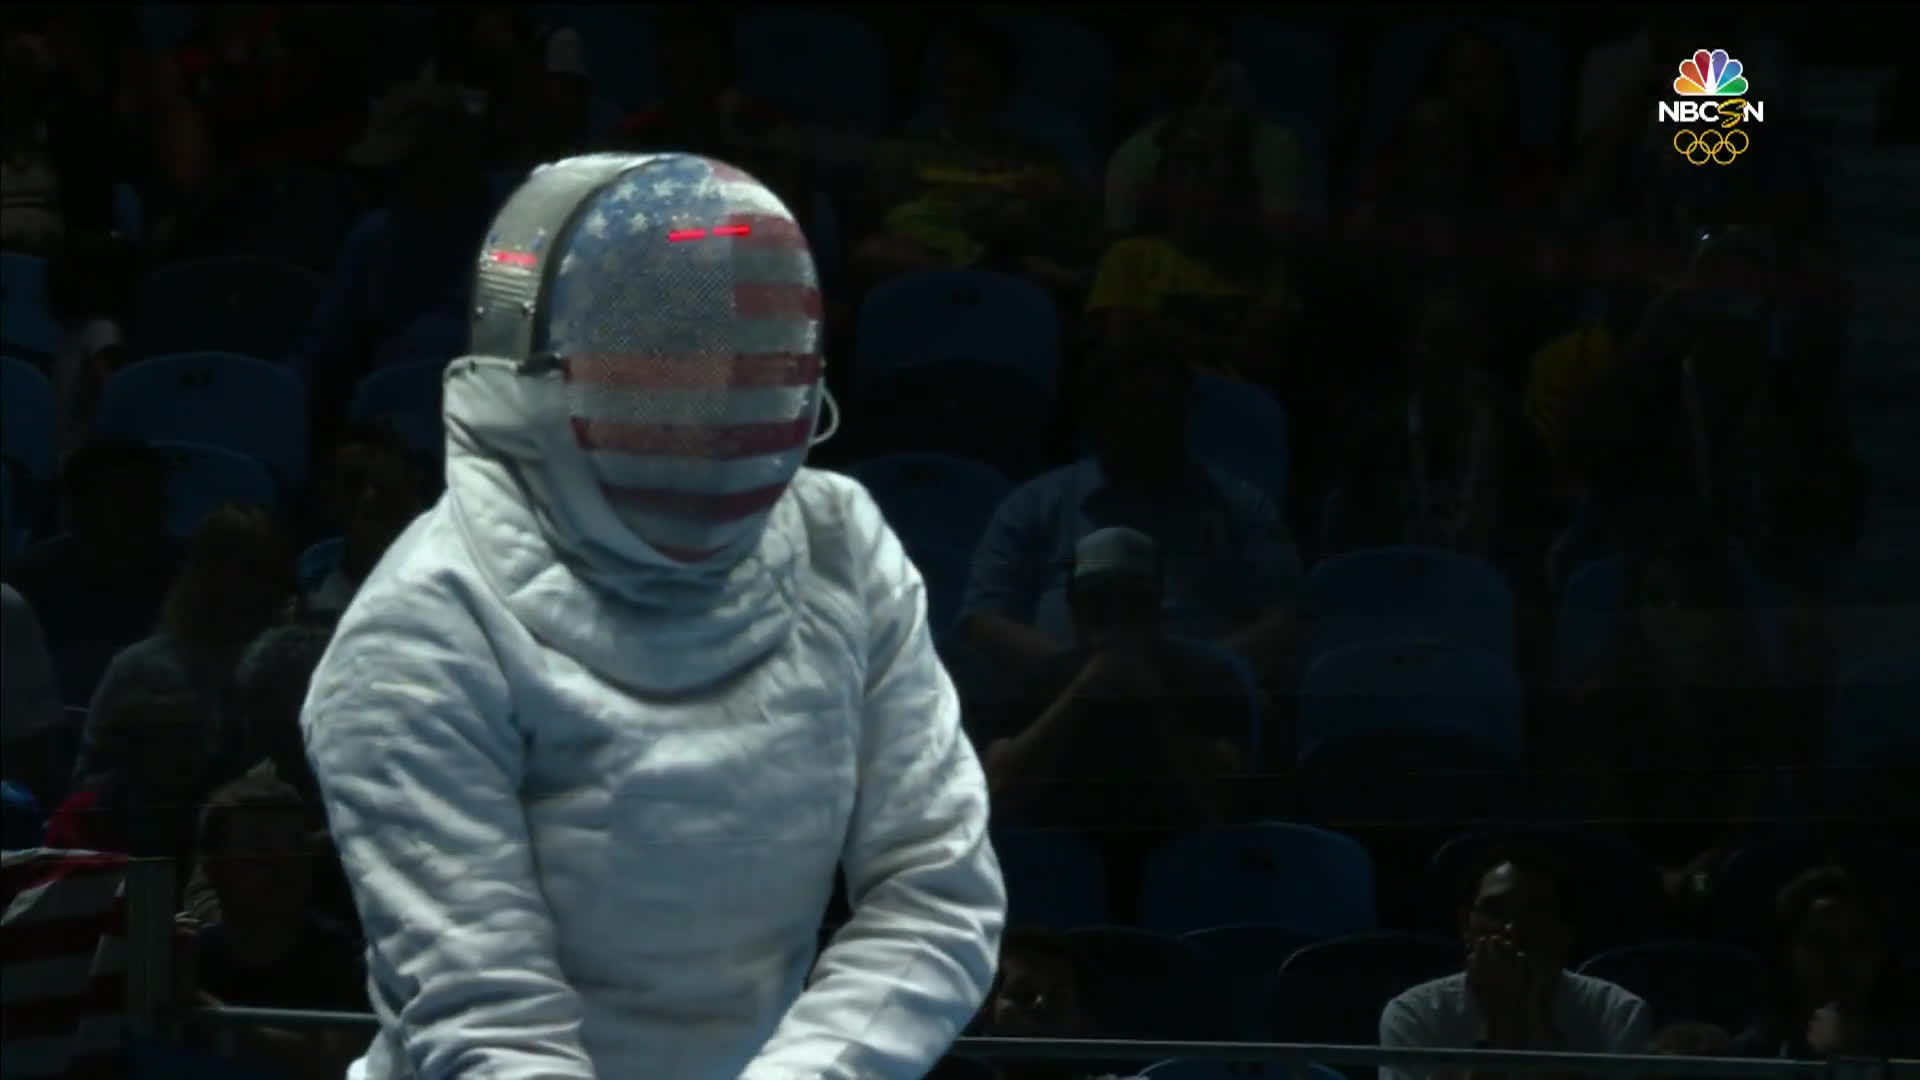 gifs, olymgifs, united states, Muhammad of the U.S. makes history in opening fencing bout GIFs